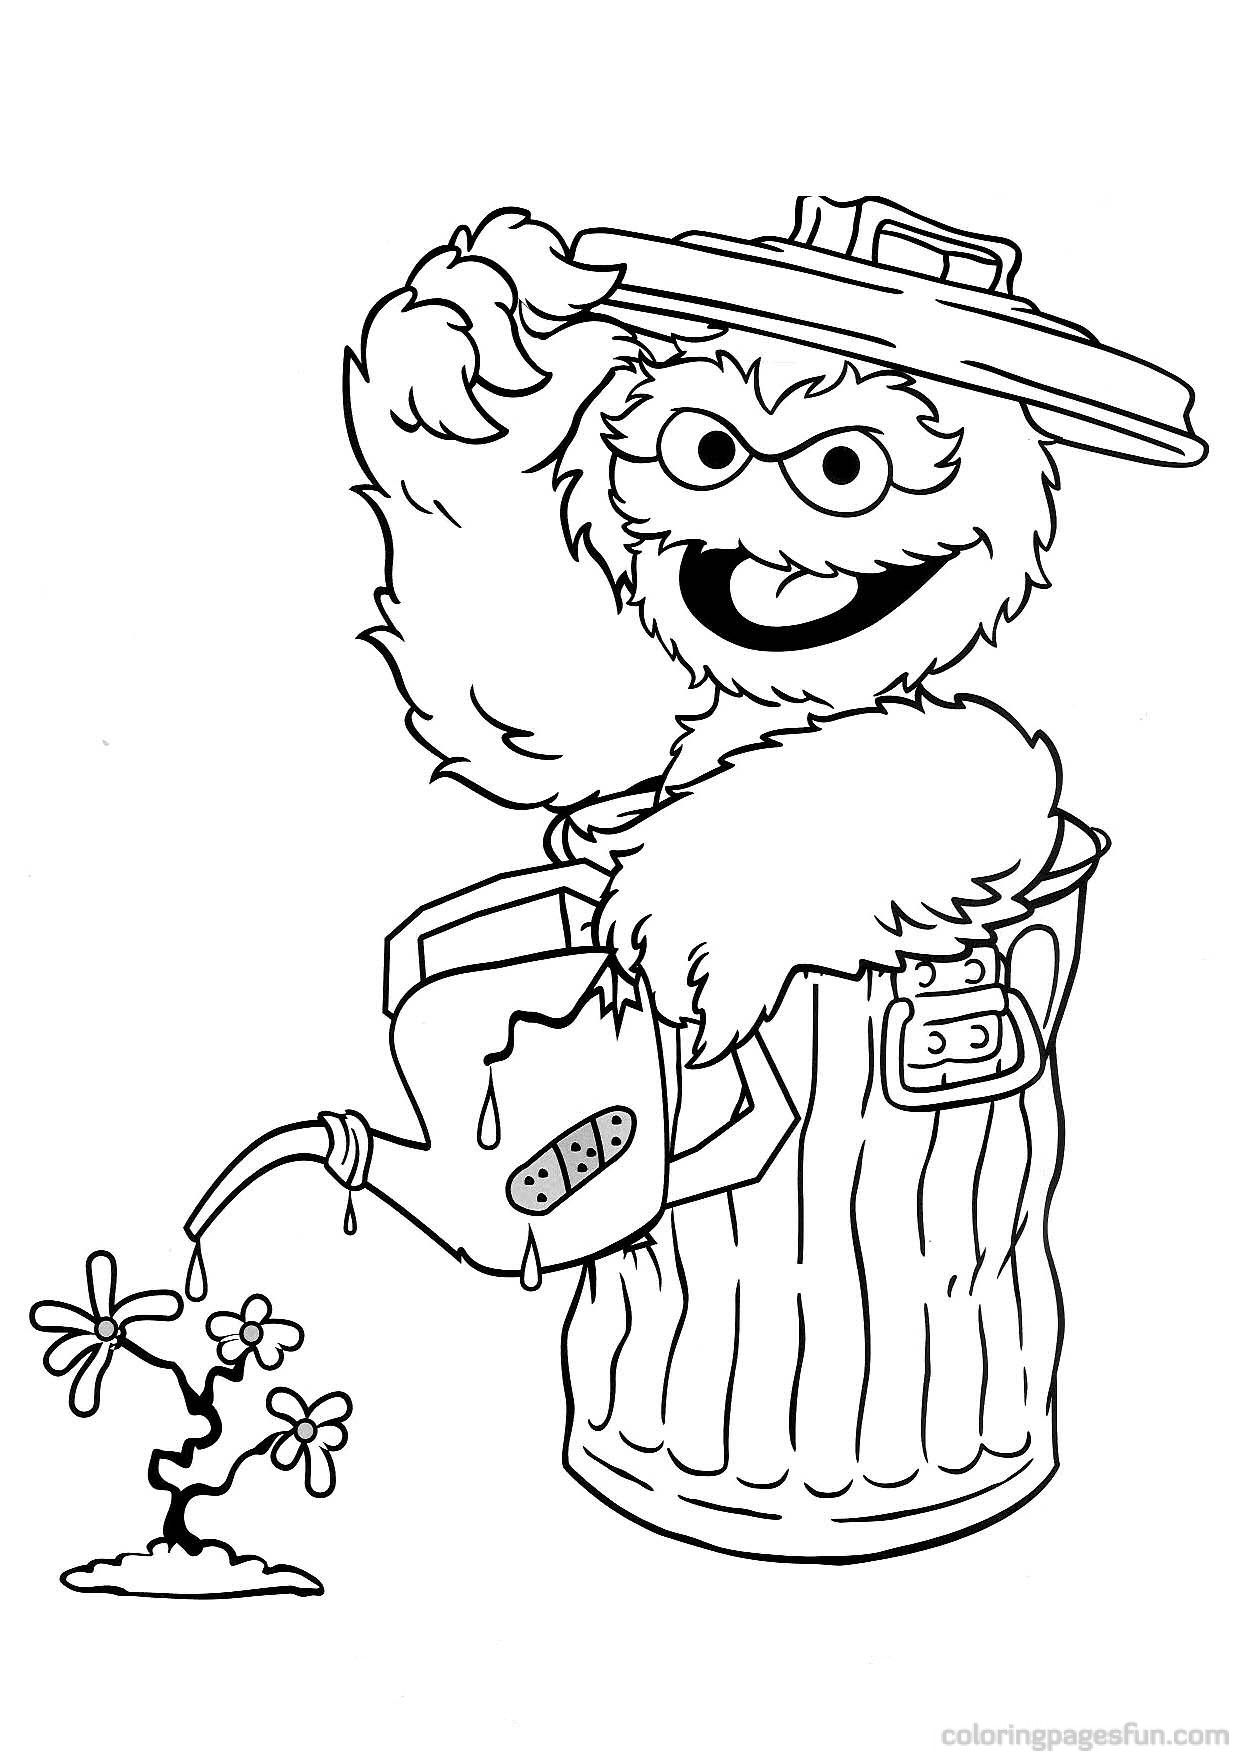 Free-Printable-Sesame-Street-Coloring-Pages.jpg (1240×1754 ...